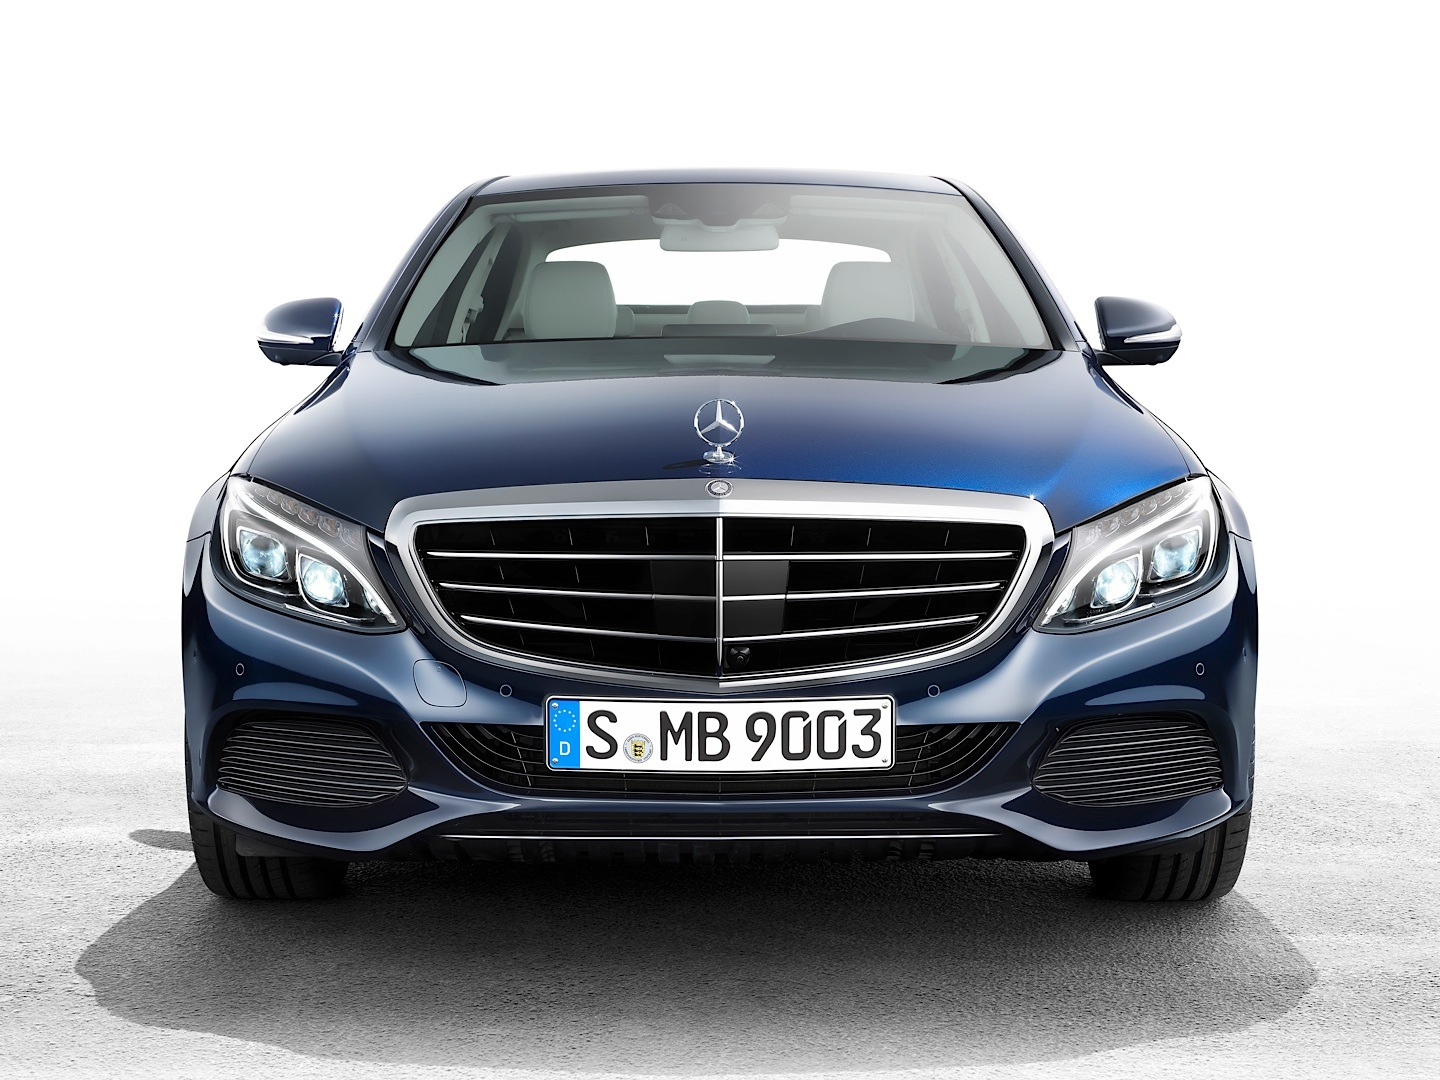 2015 mercedes benz c class sedan review msrp mpg for The price of mercedes benz